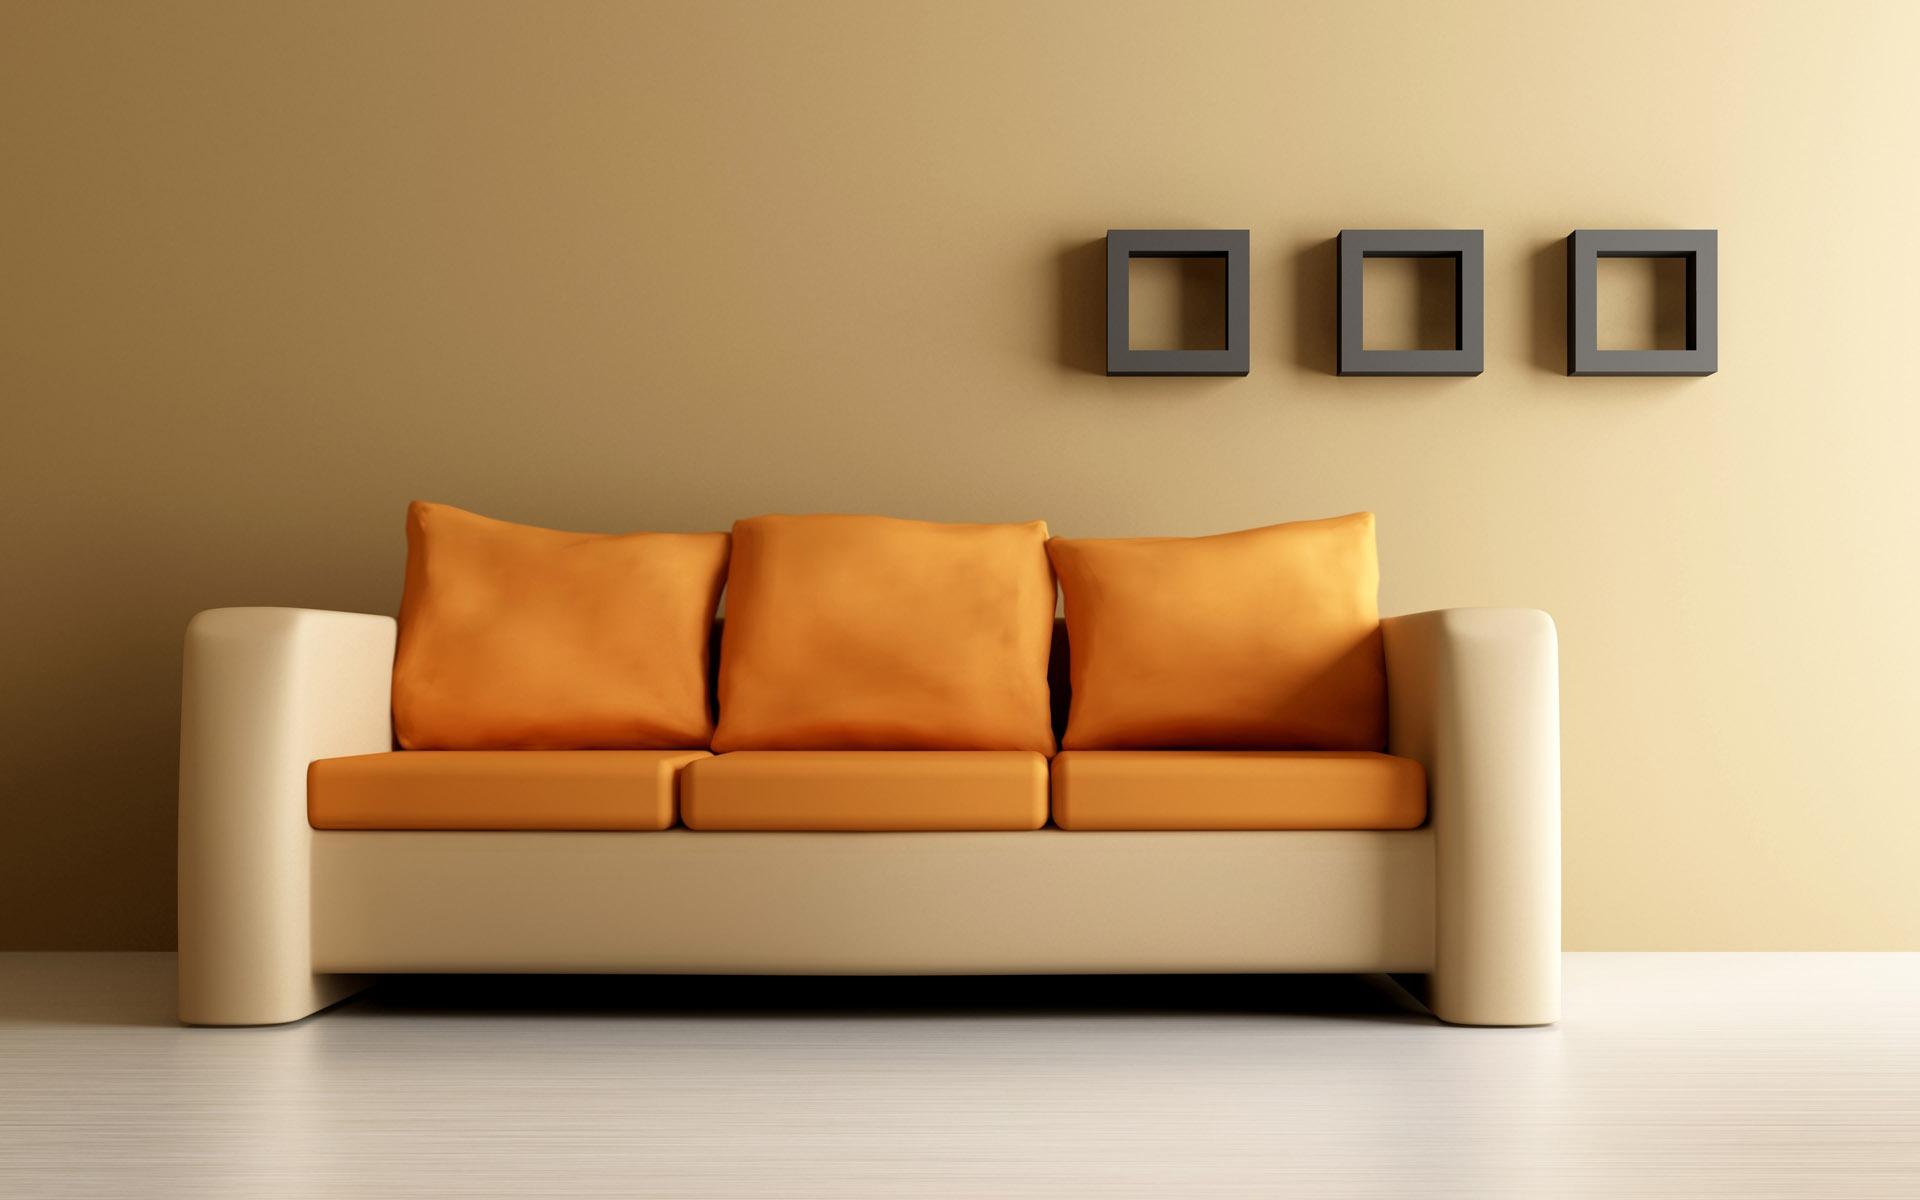 Orange Couch Wallpaper Interior Design Other Wallpapers in jpg